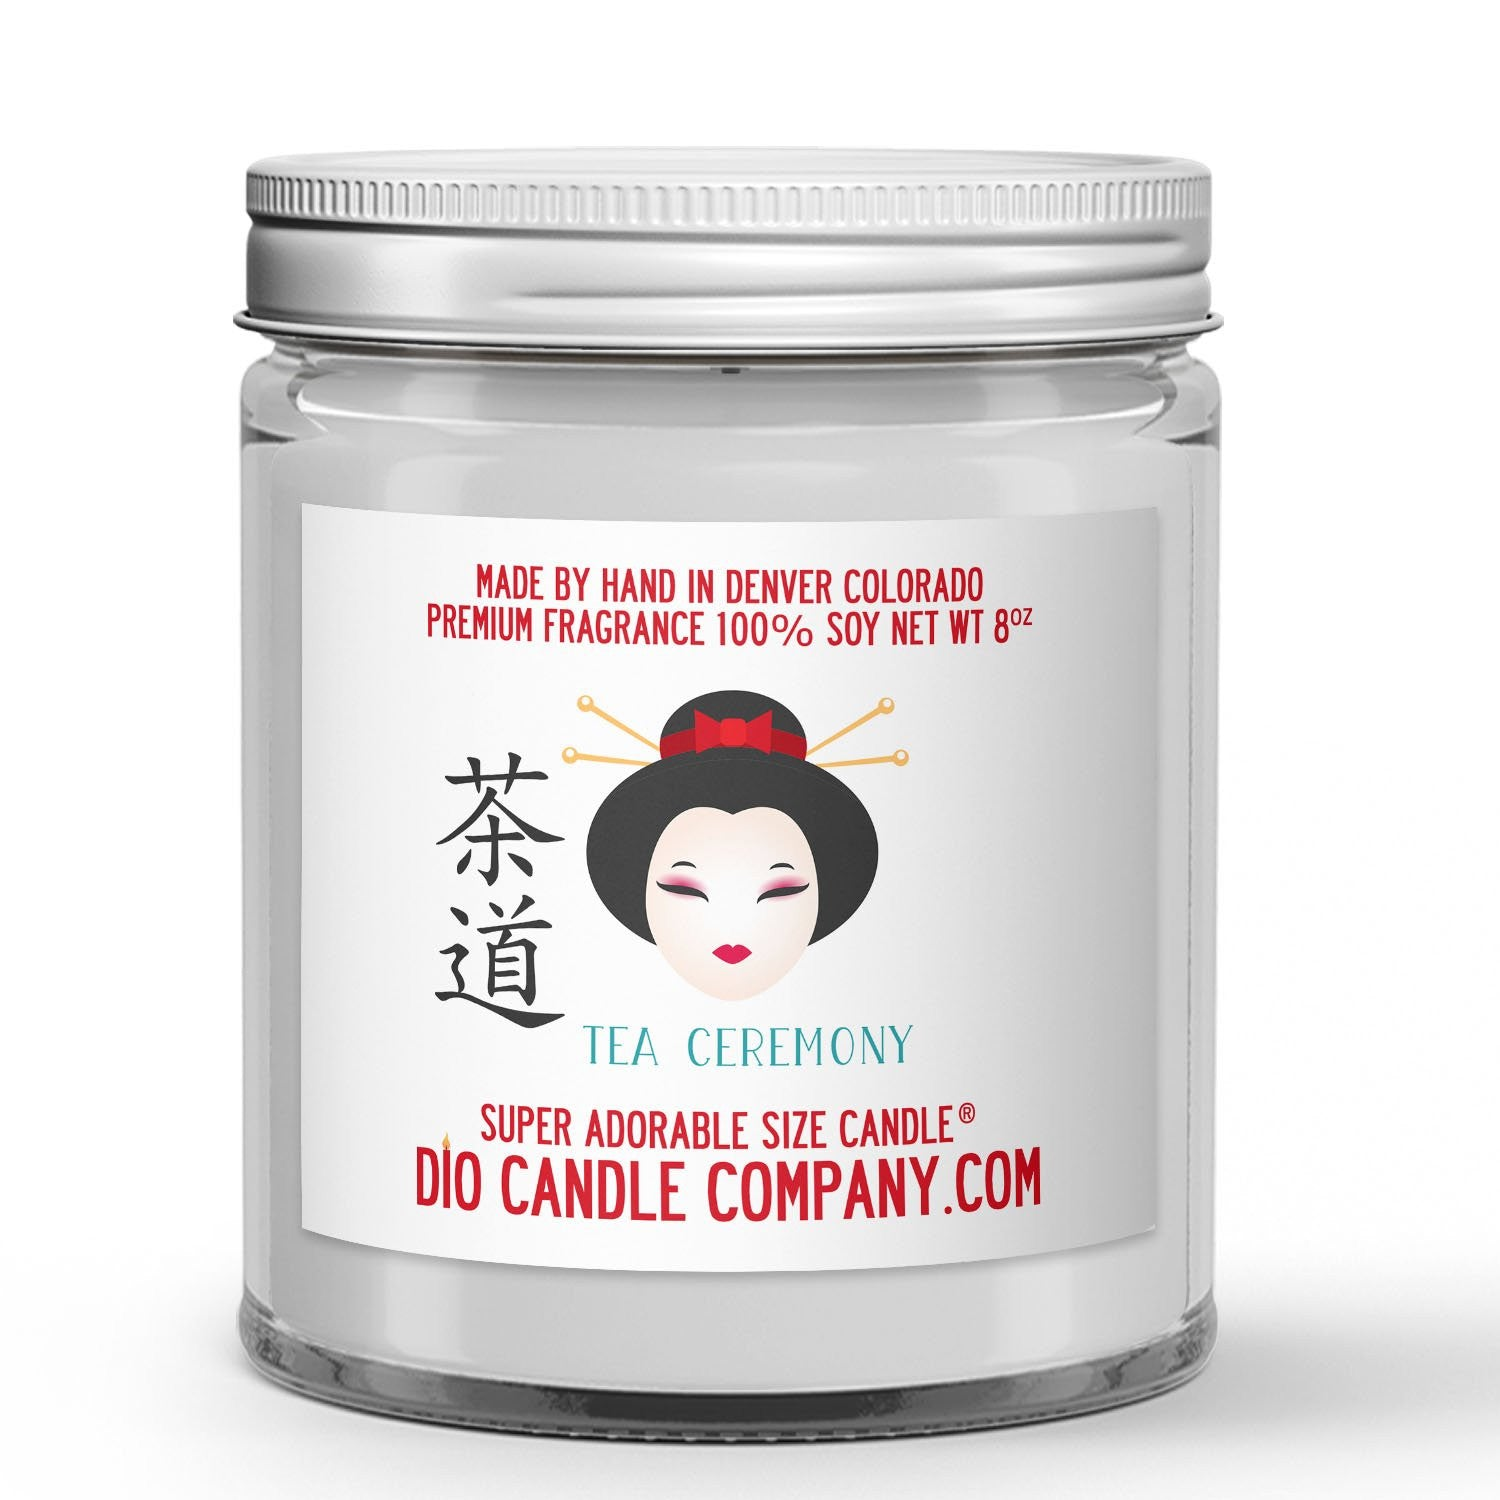 Tea Ceremony Candle - Matcha Green Tea - White Musk - 8oz Super Adorable Size Candle® - Dio Candle Company